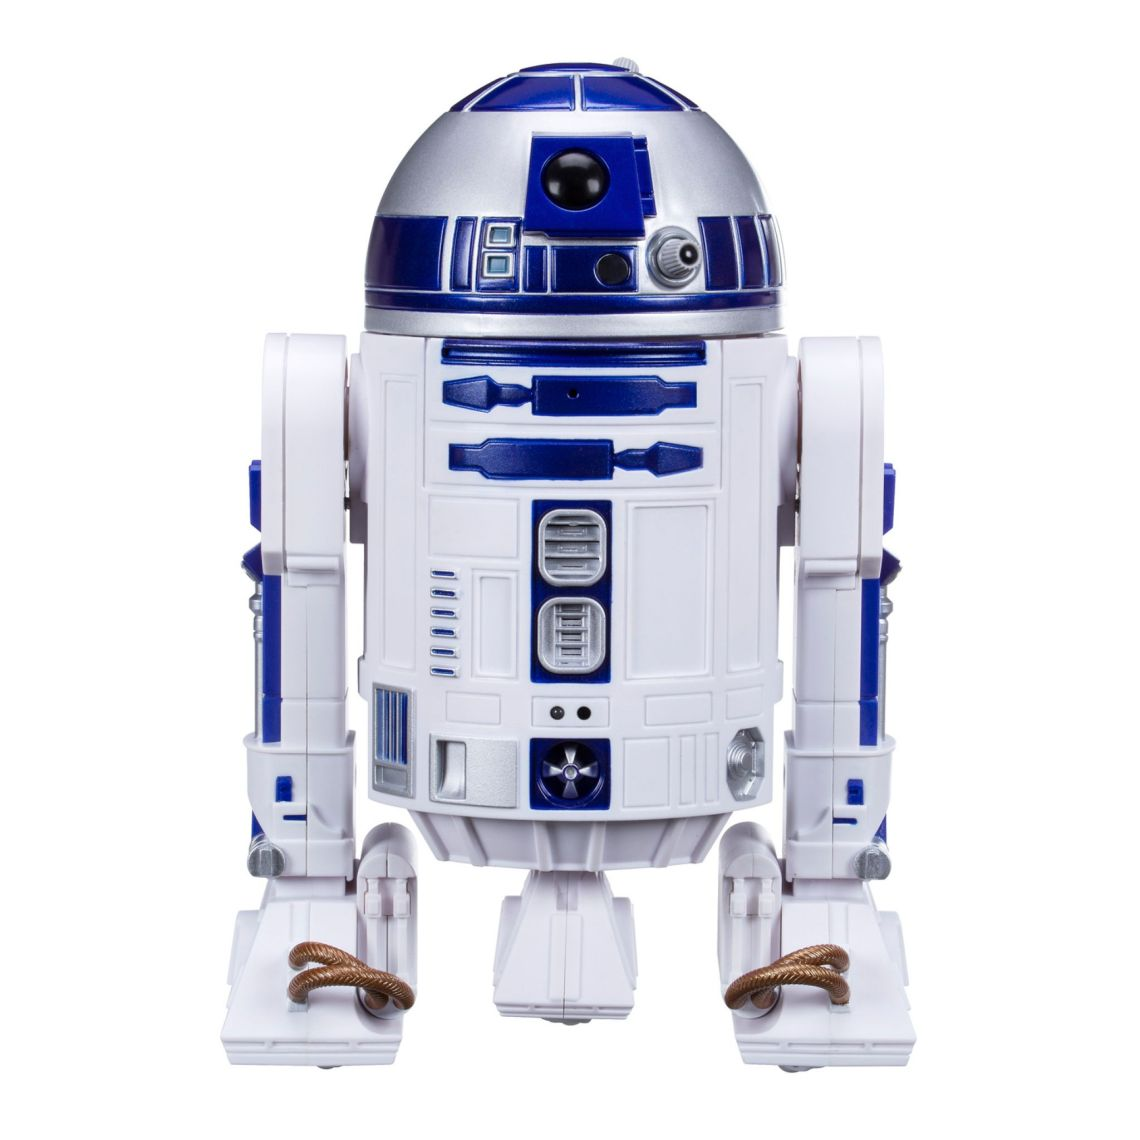 Star Wars: The Last Jedi Smart R2-D2 - Walmart.com